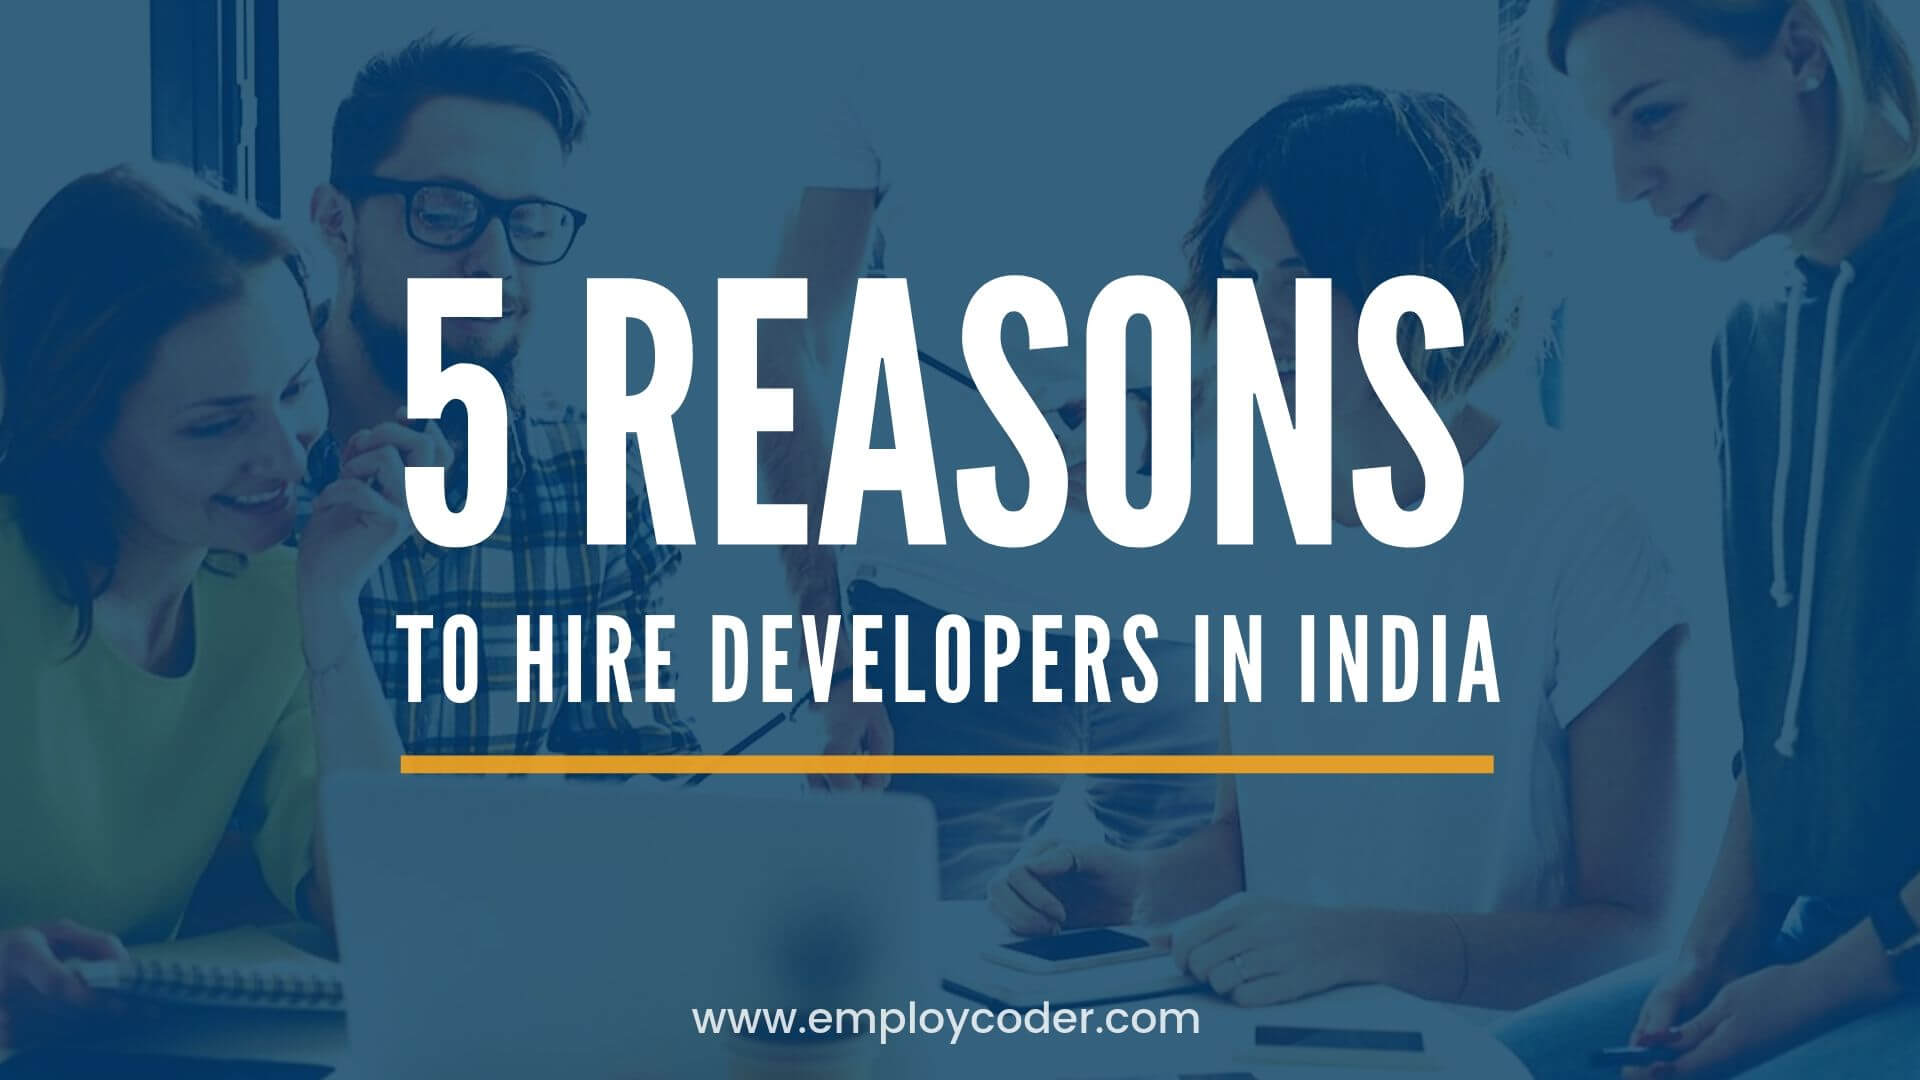 5 Reasons to Hire Developers in India